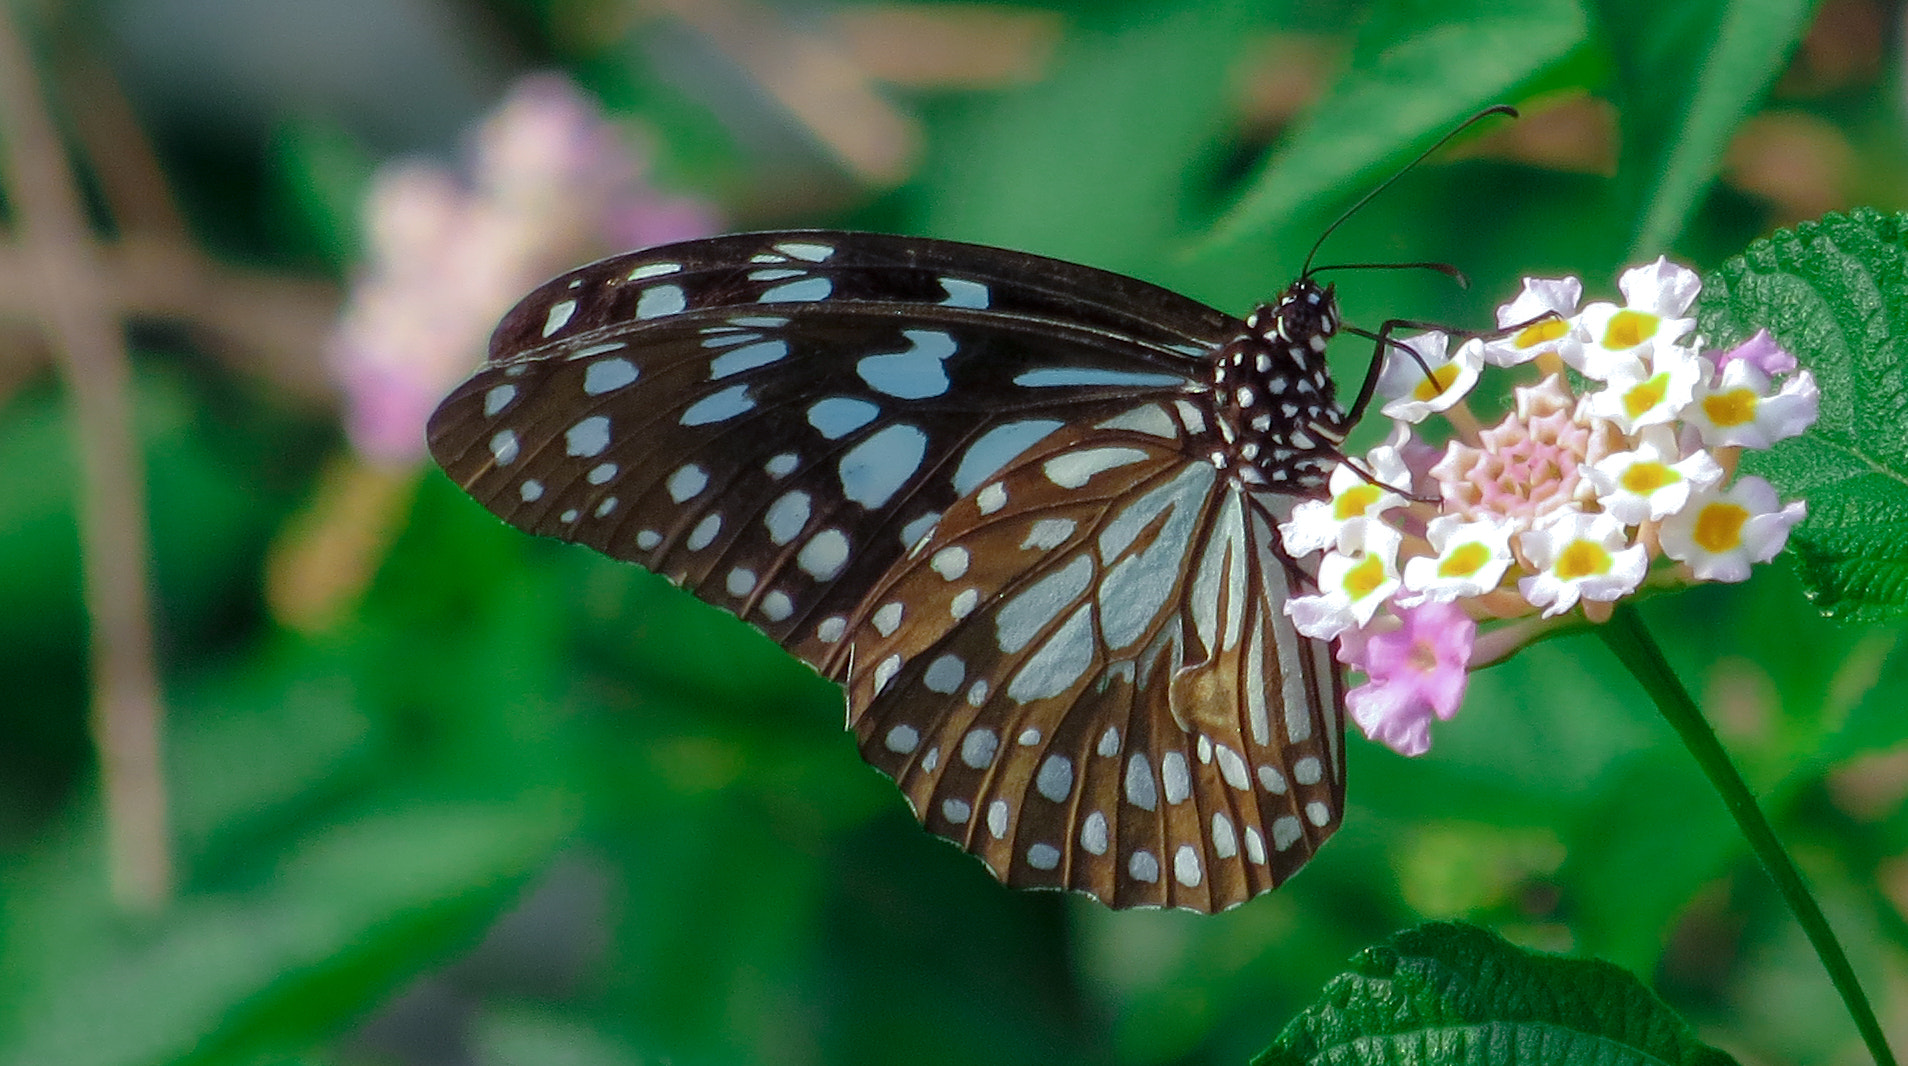 Photograph Butterfly by Prashant Gupta on 500px